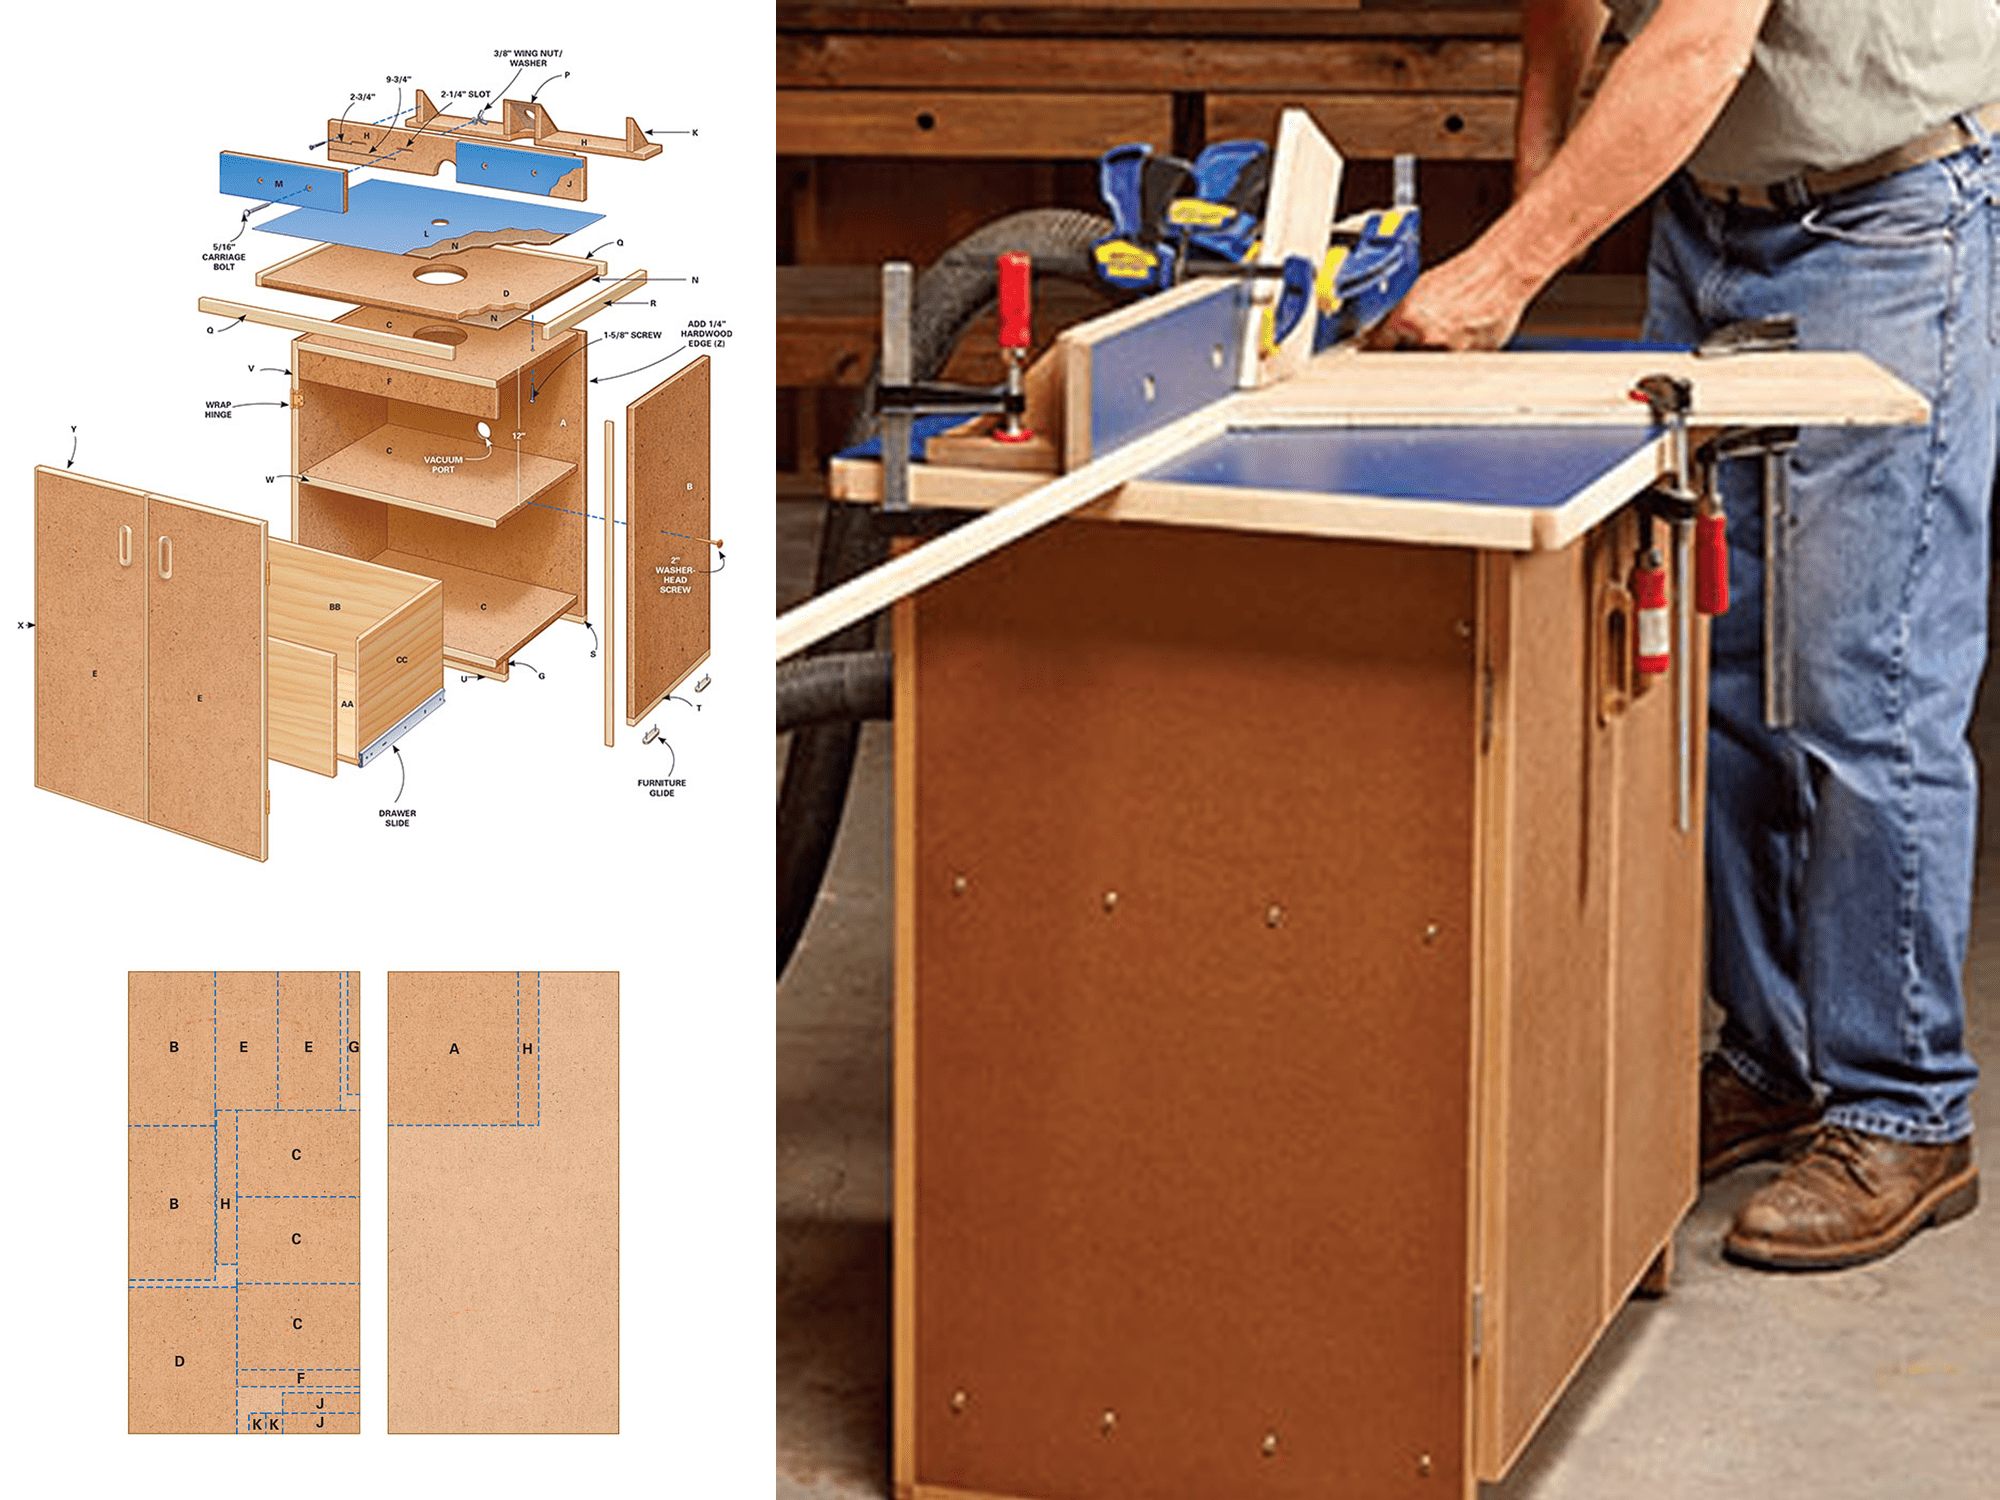 11 free diy router table plans you can use right now